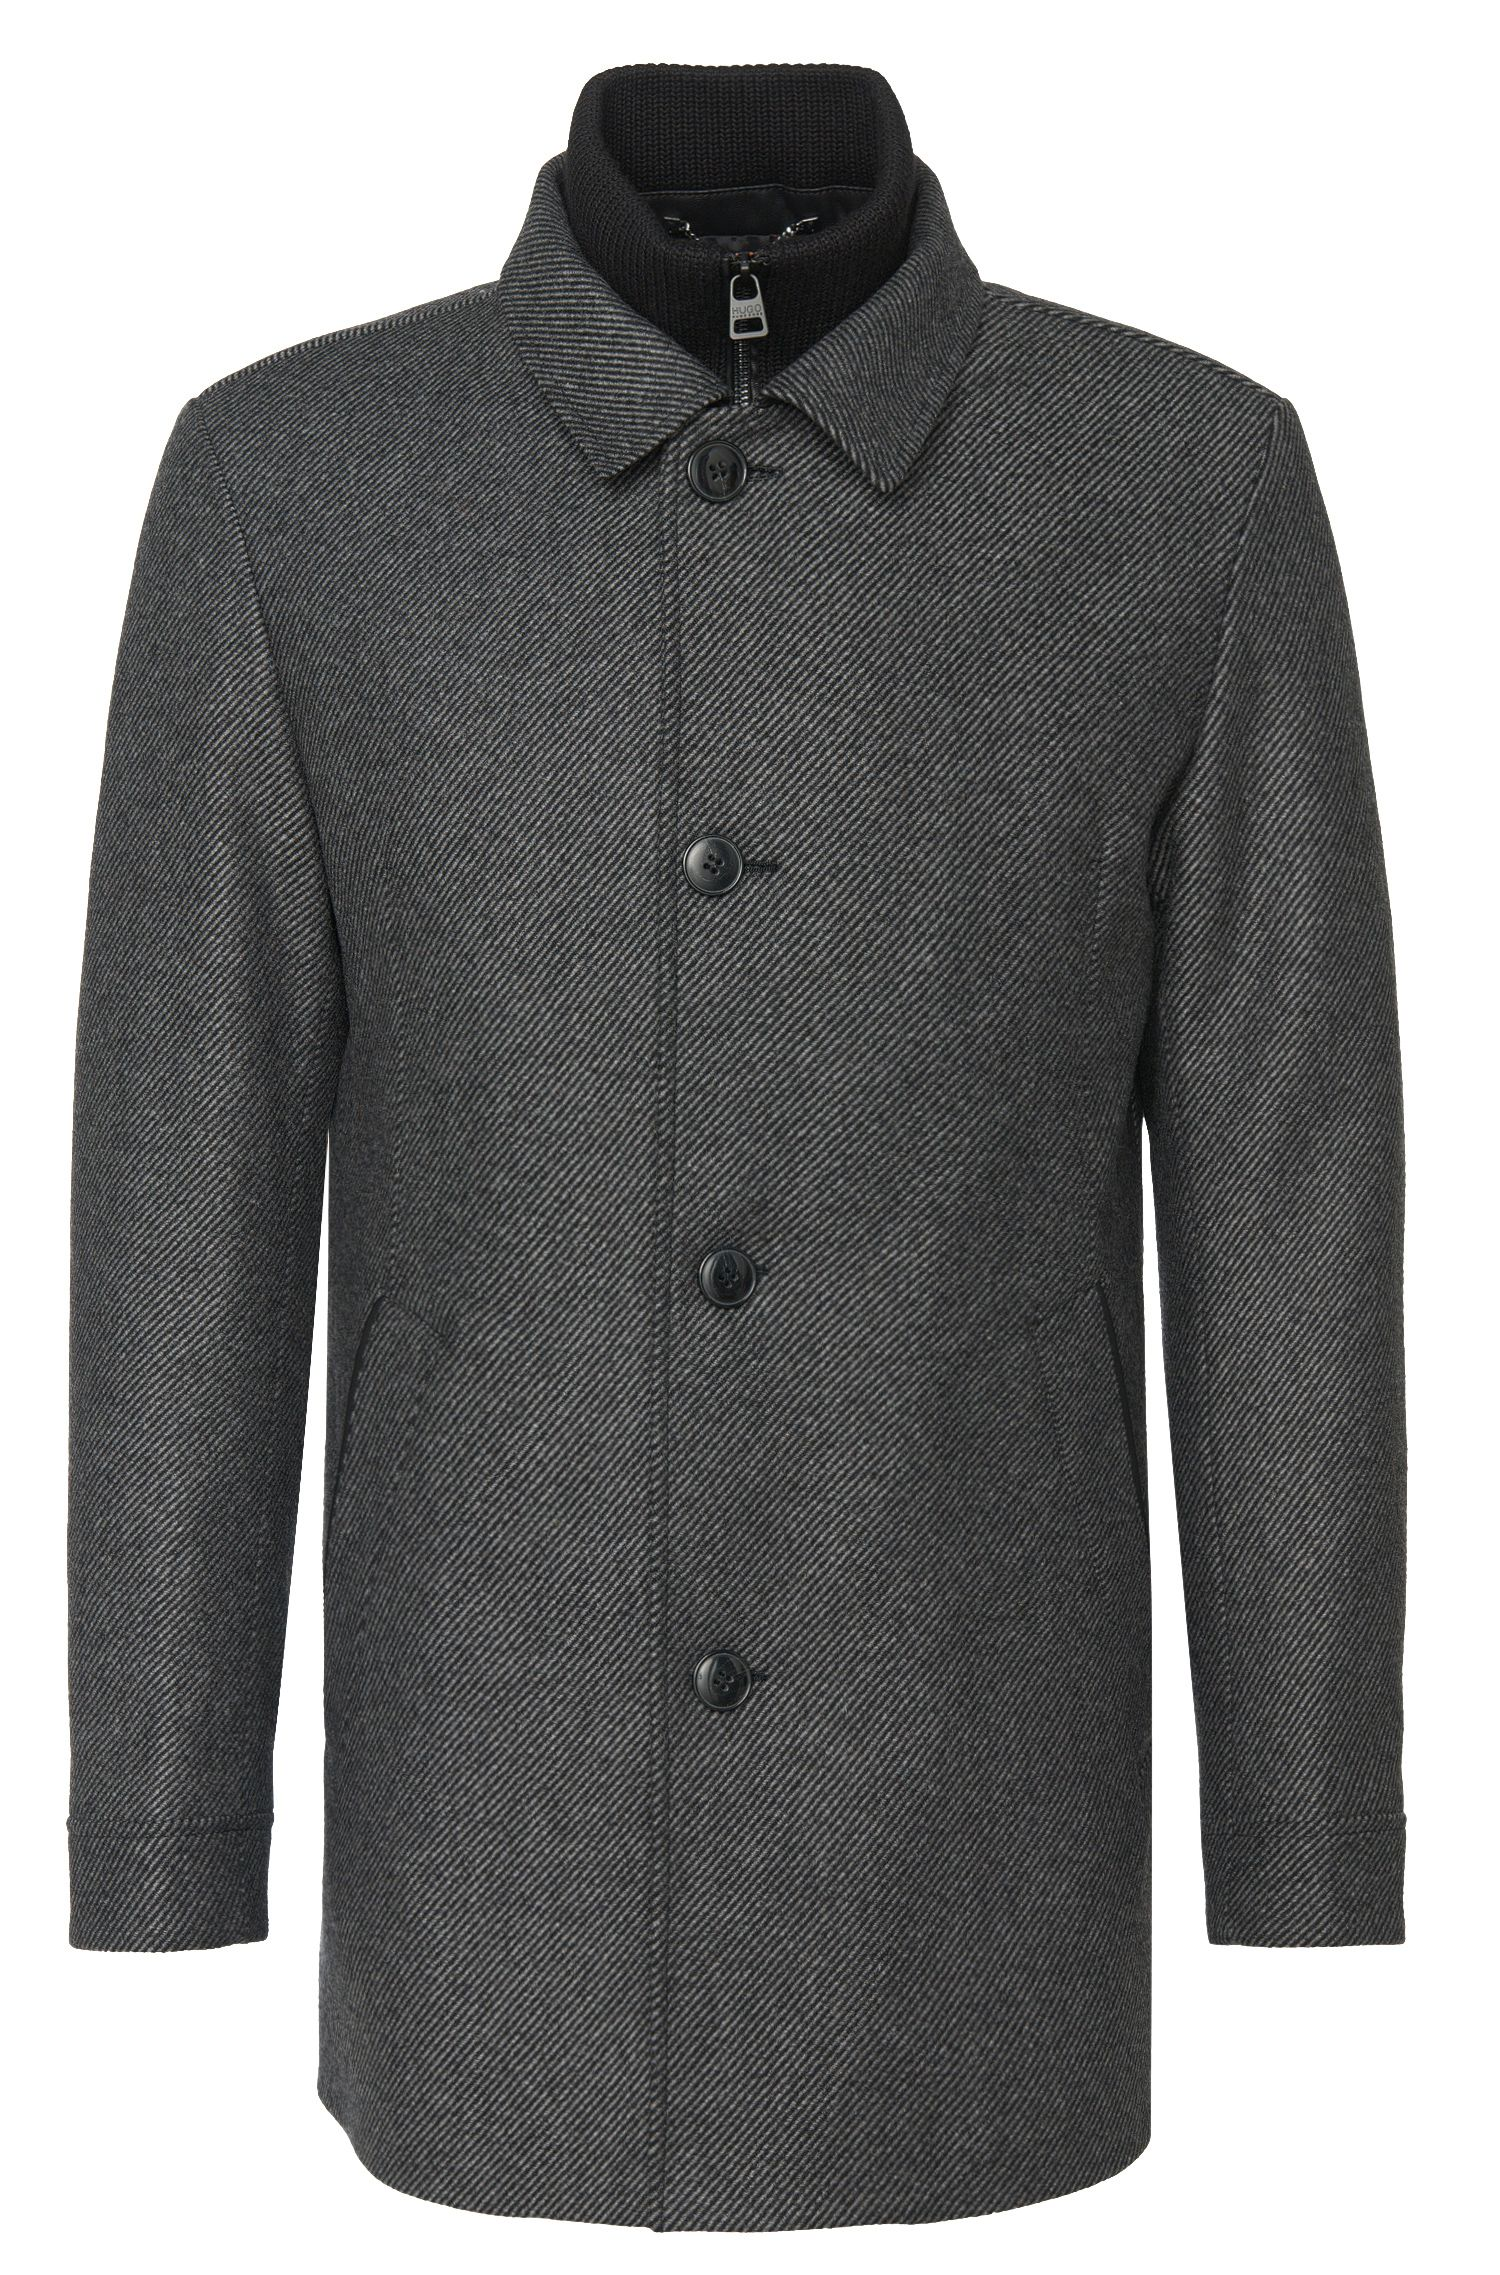 'Barelto' | Wool Blend Car Coat